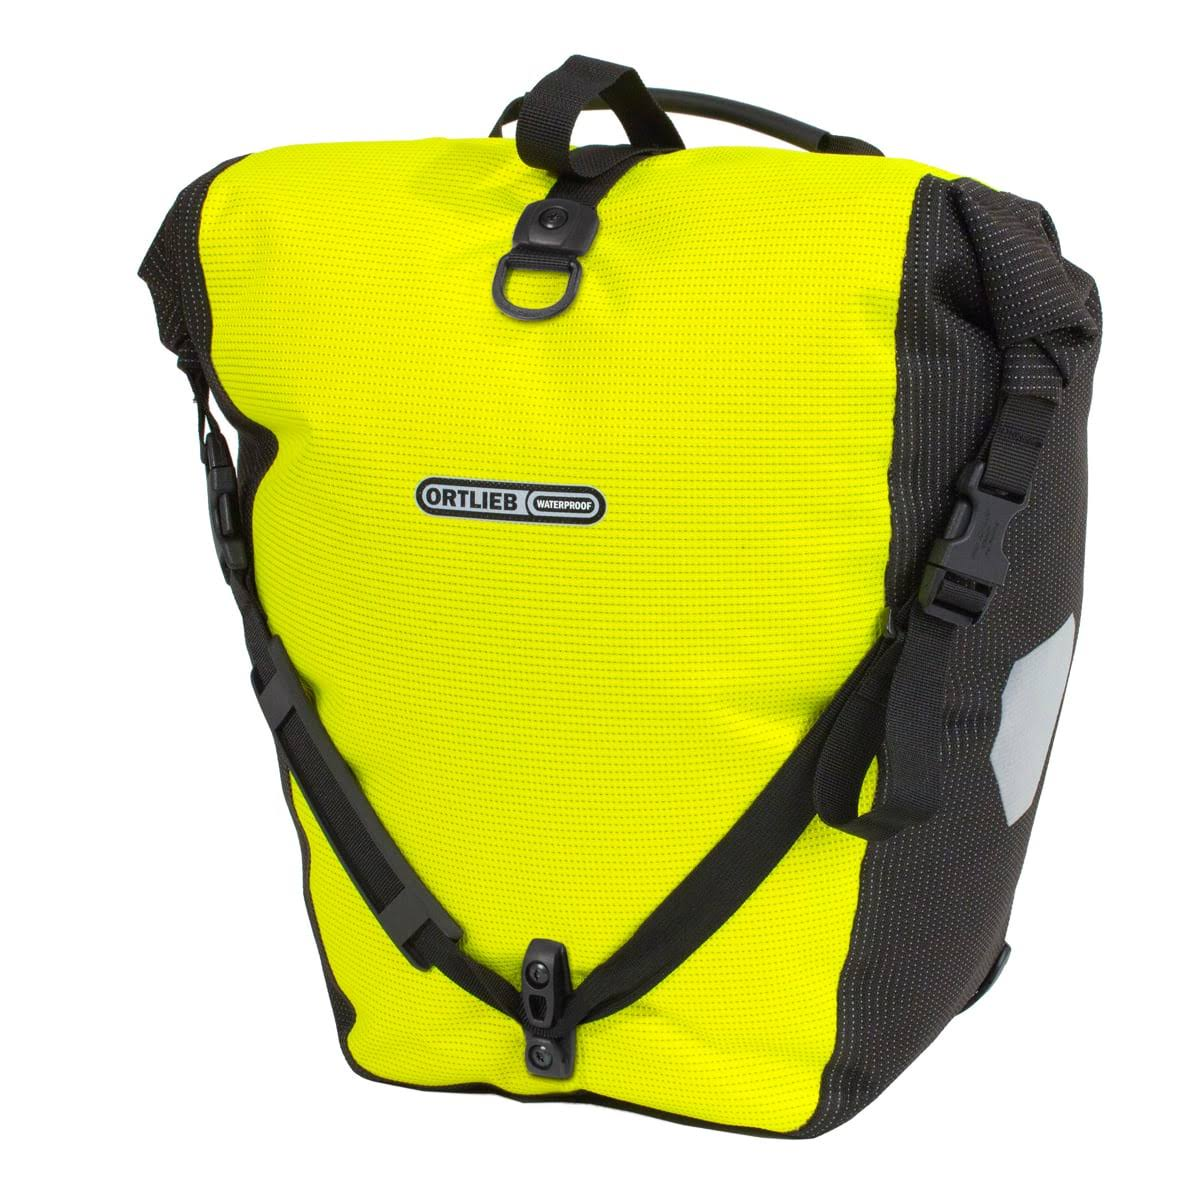 Ortlieb Back-Roller High-Visibility Pannier - Yellow & Black